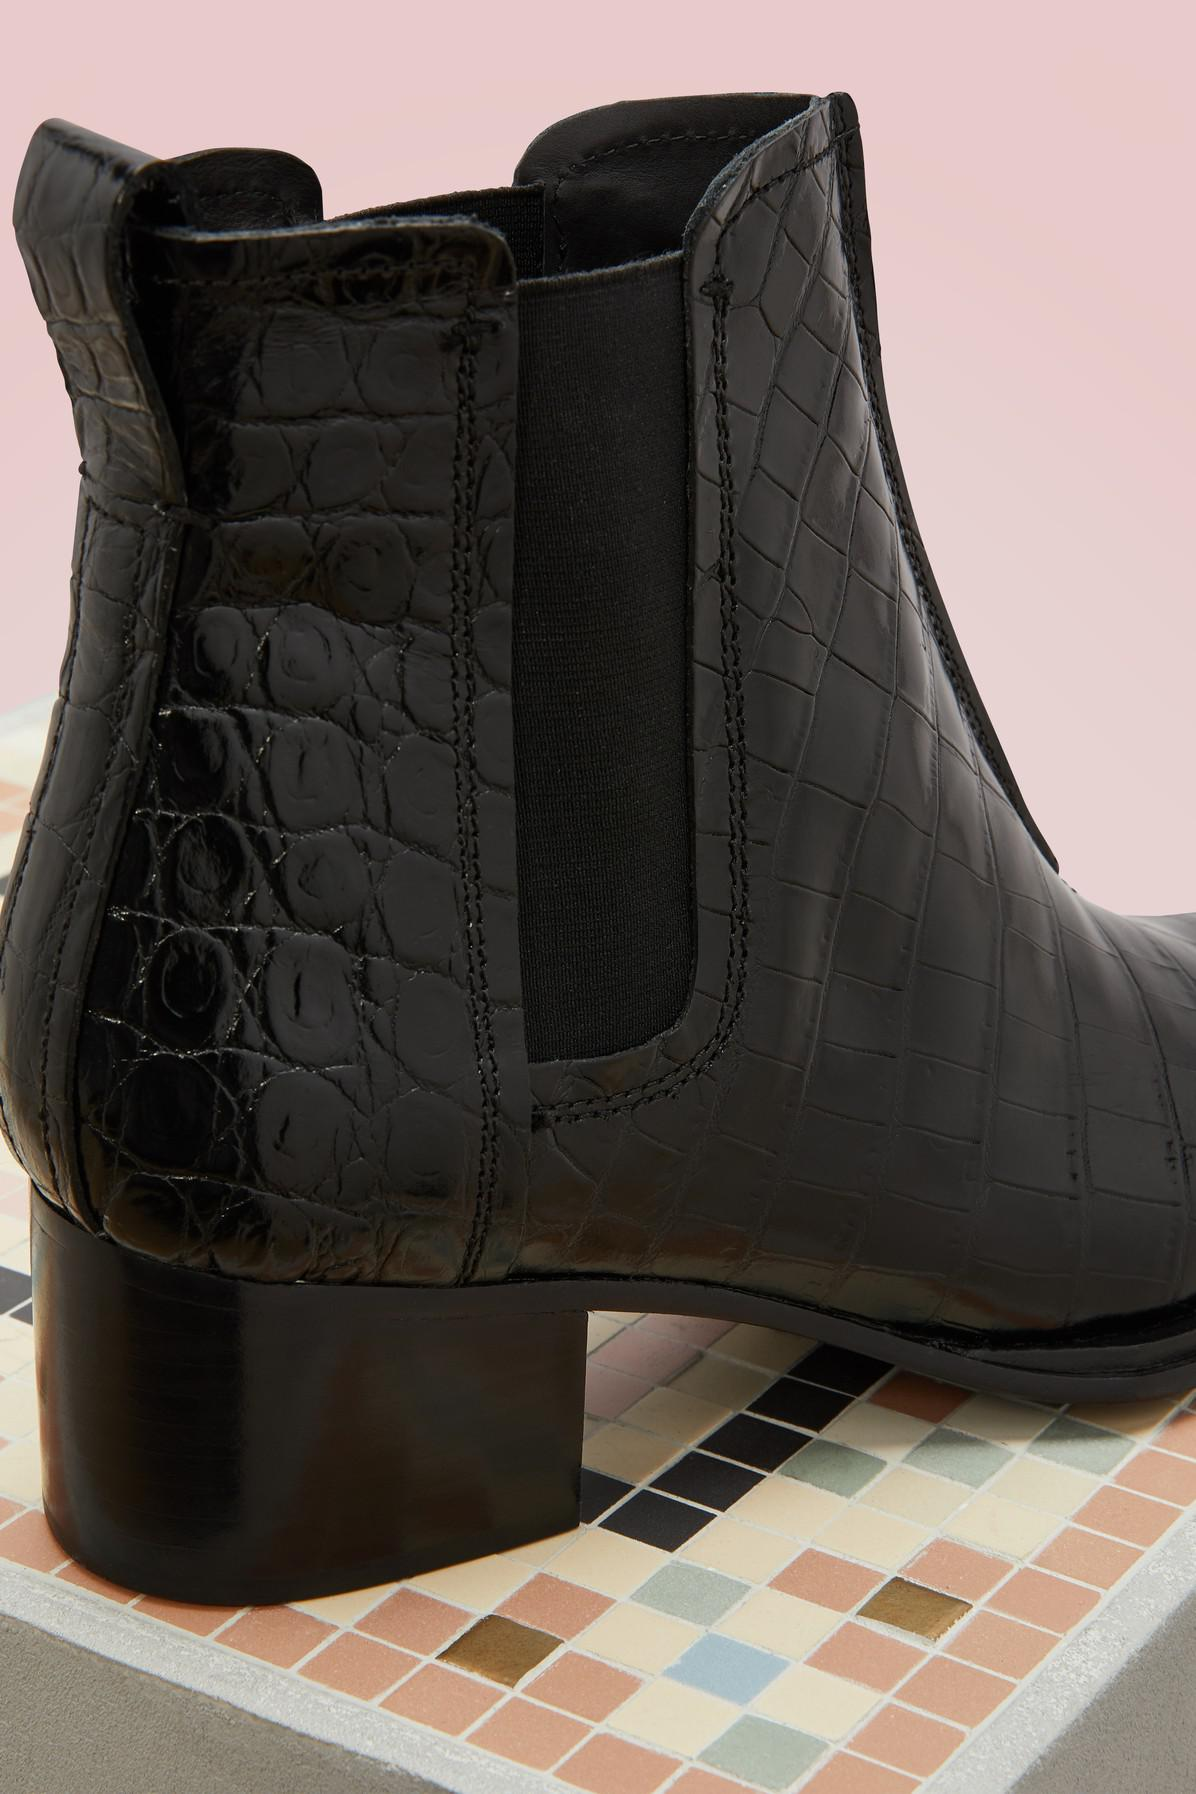 452cfde20b Rag & Bone Walker Ii Boots in Black - Lyst